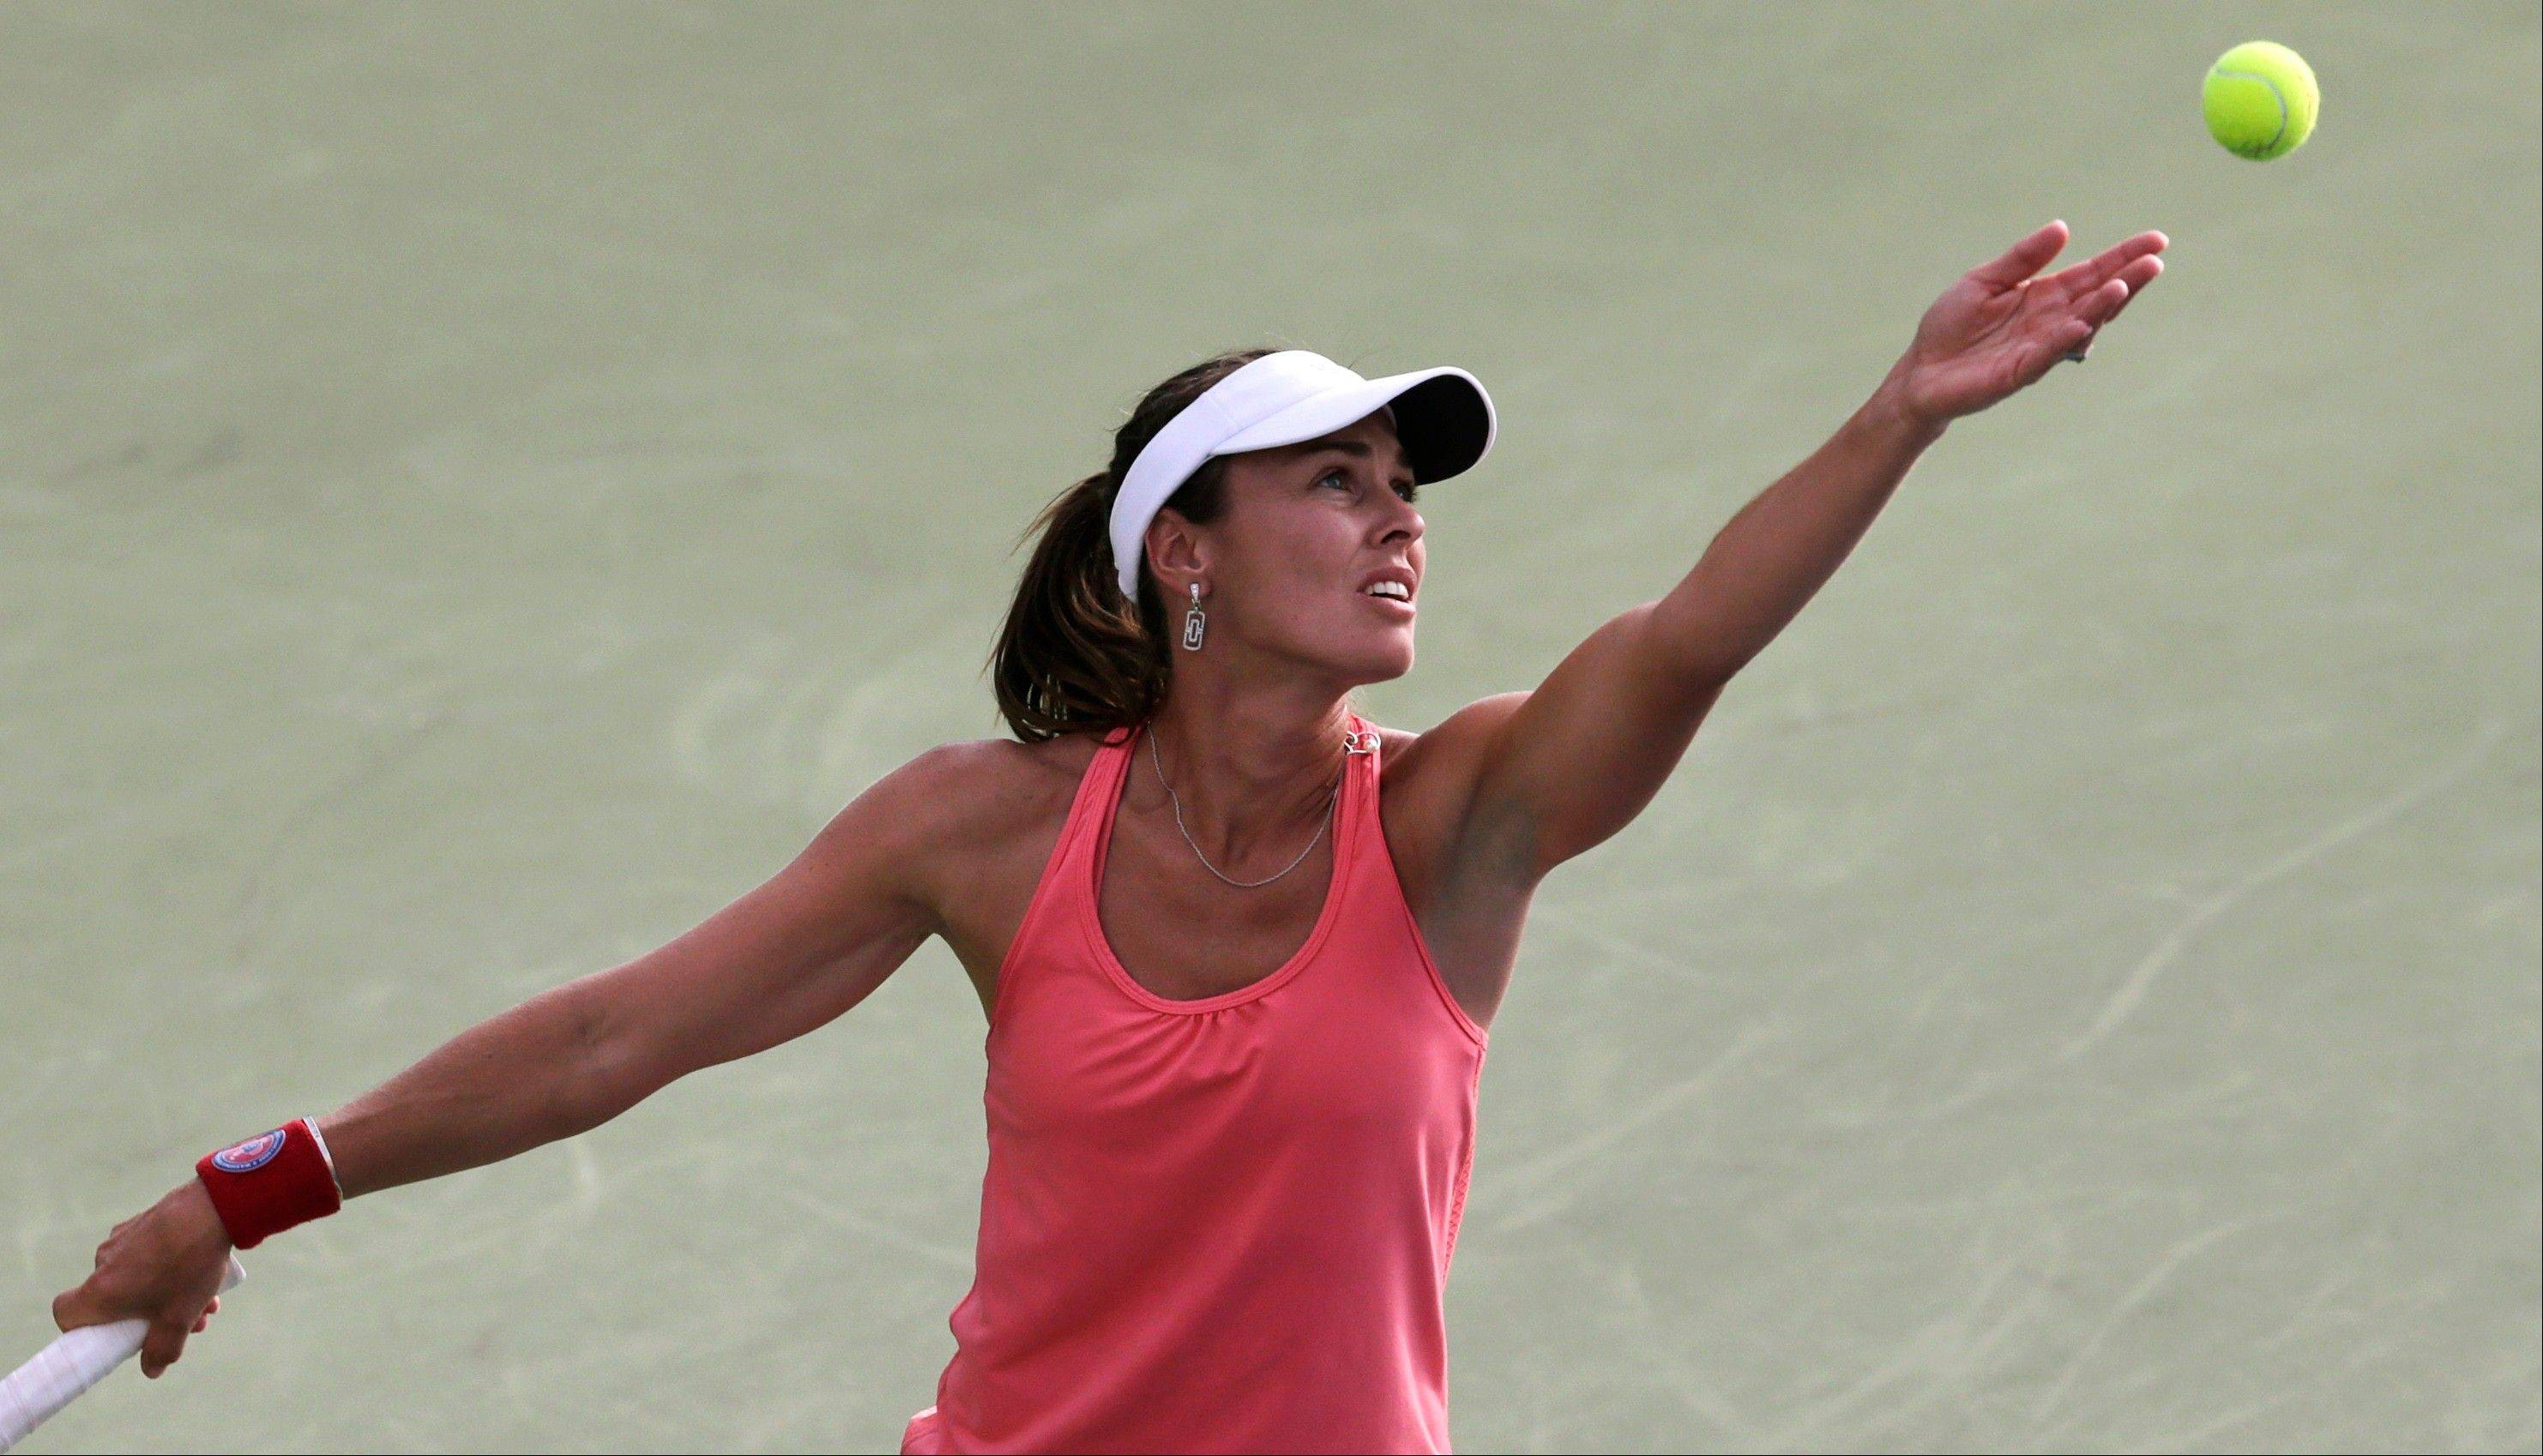 Hingis goes 0-2 in return to Grand Slam tennis